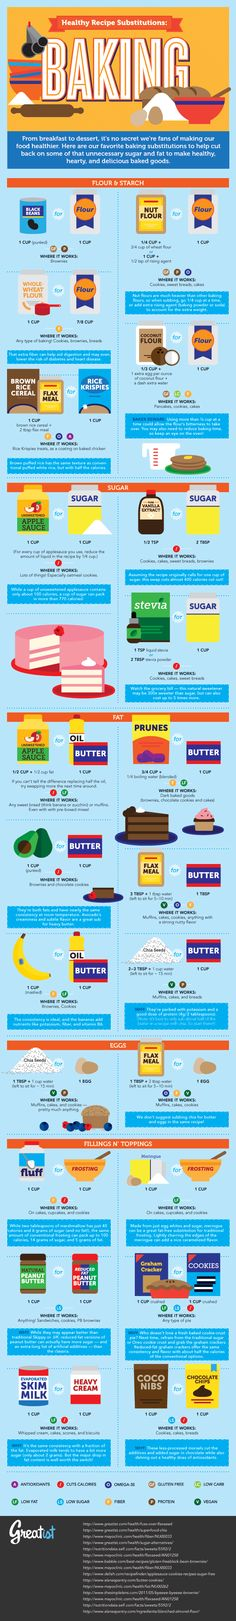 Cool baking substitutions!